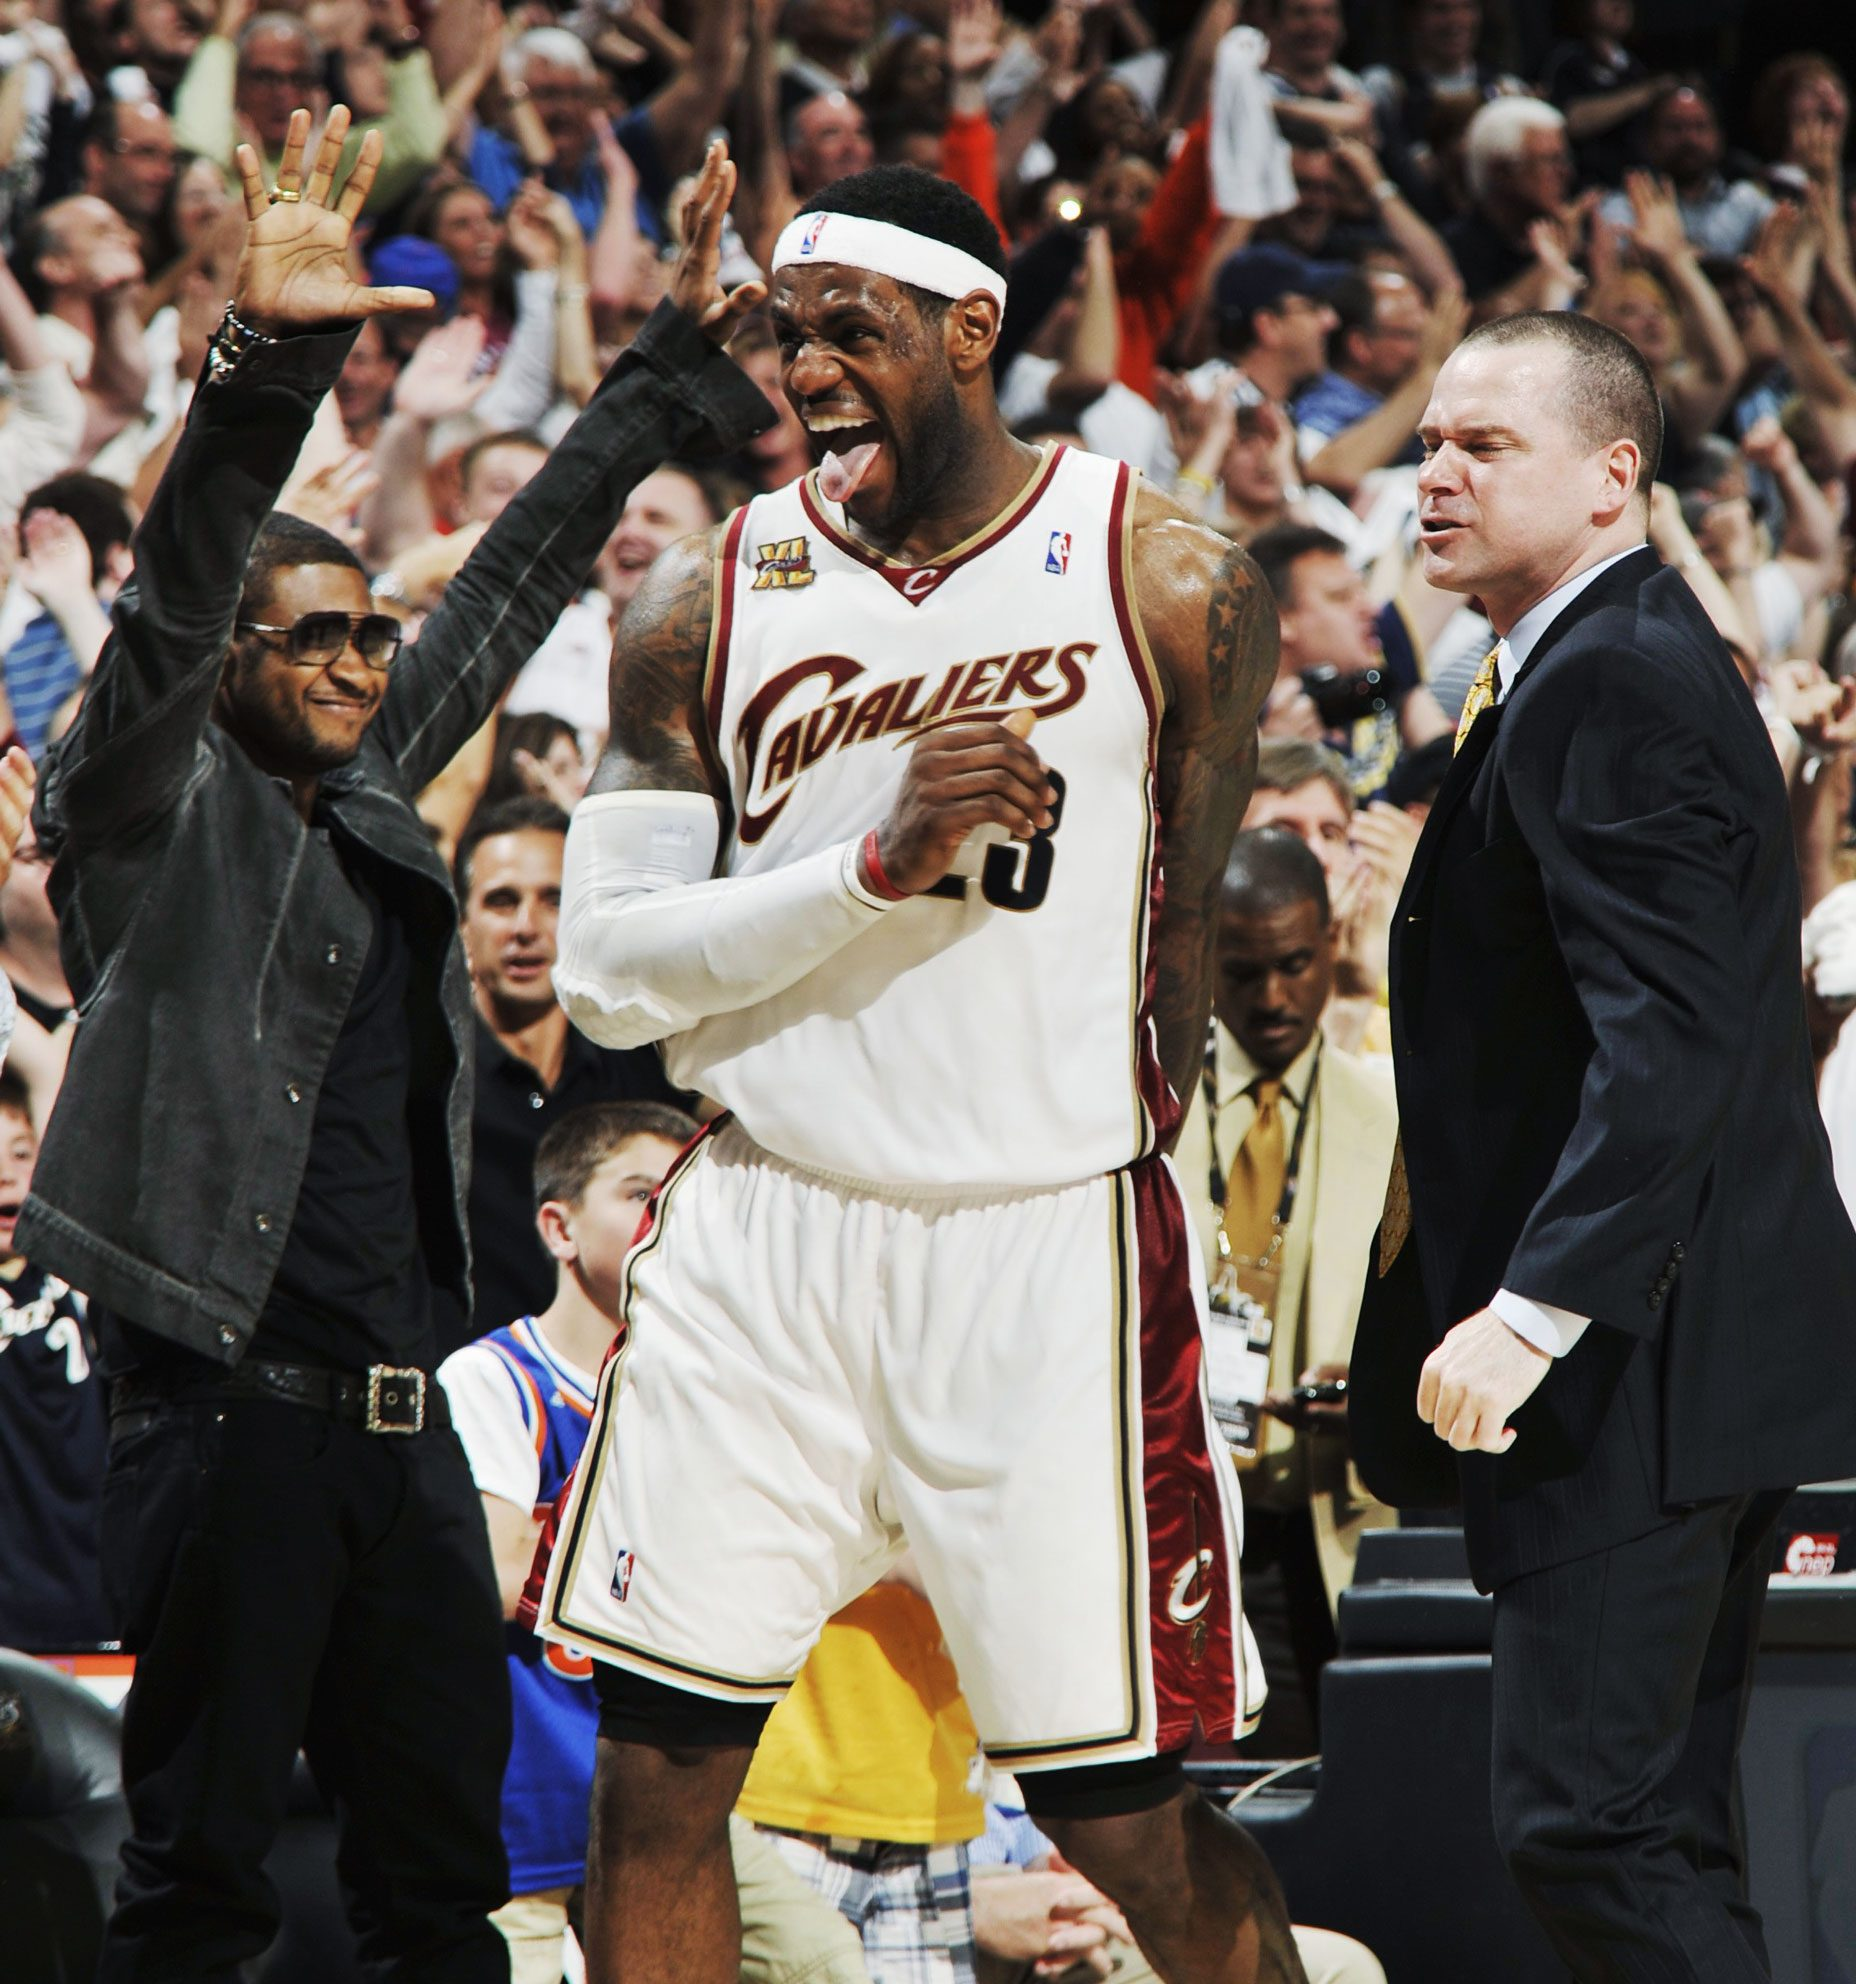 ... Cavaliers celebrates in front of musician Usher in Game One of the  Eastern Conference Semifinals against the Boston Celtics during the 2010 NBA  Playoffs ... 1810c8fe2